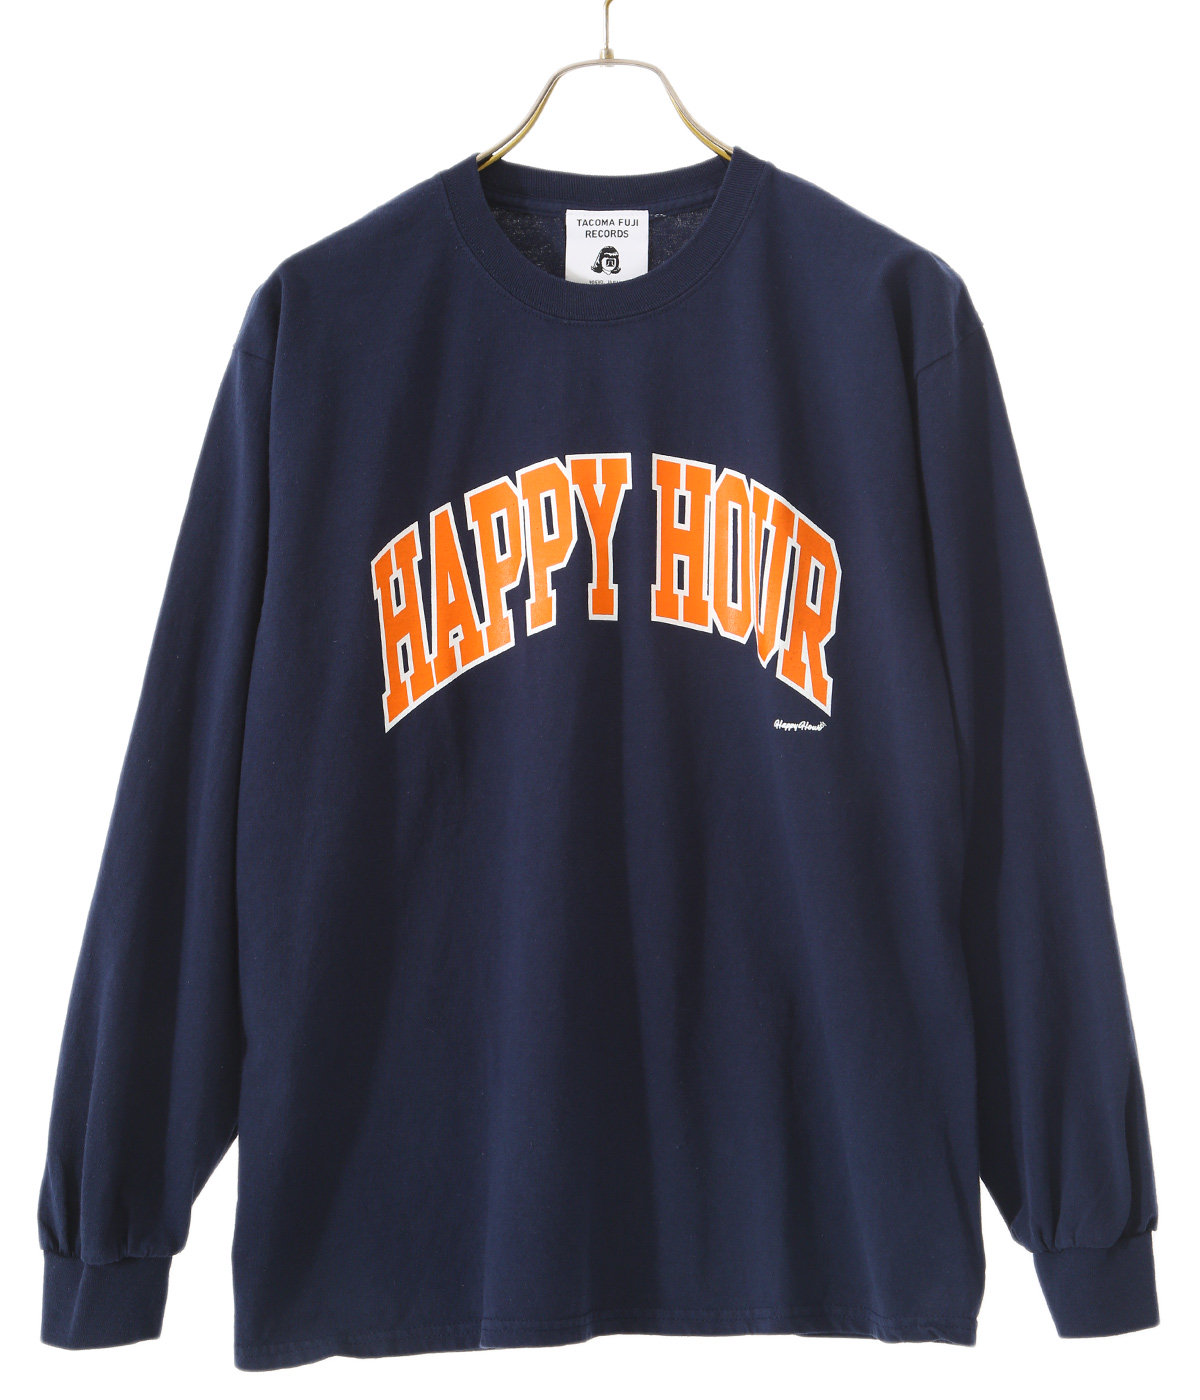 HAPPY HOUR (LS) shirt